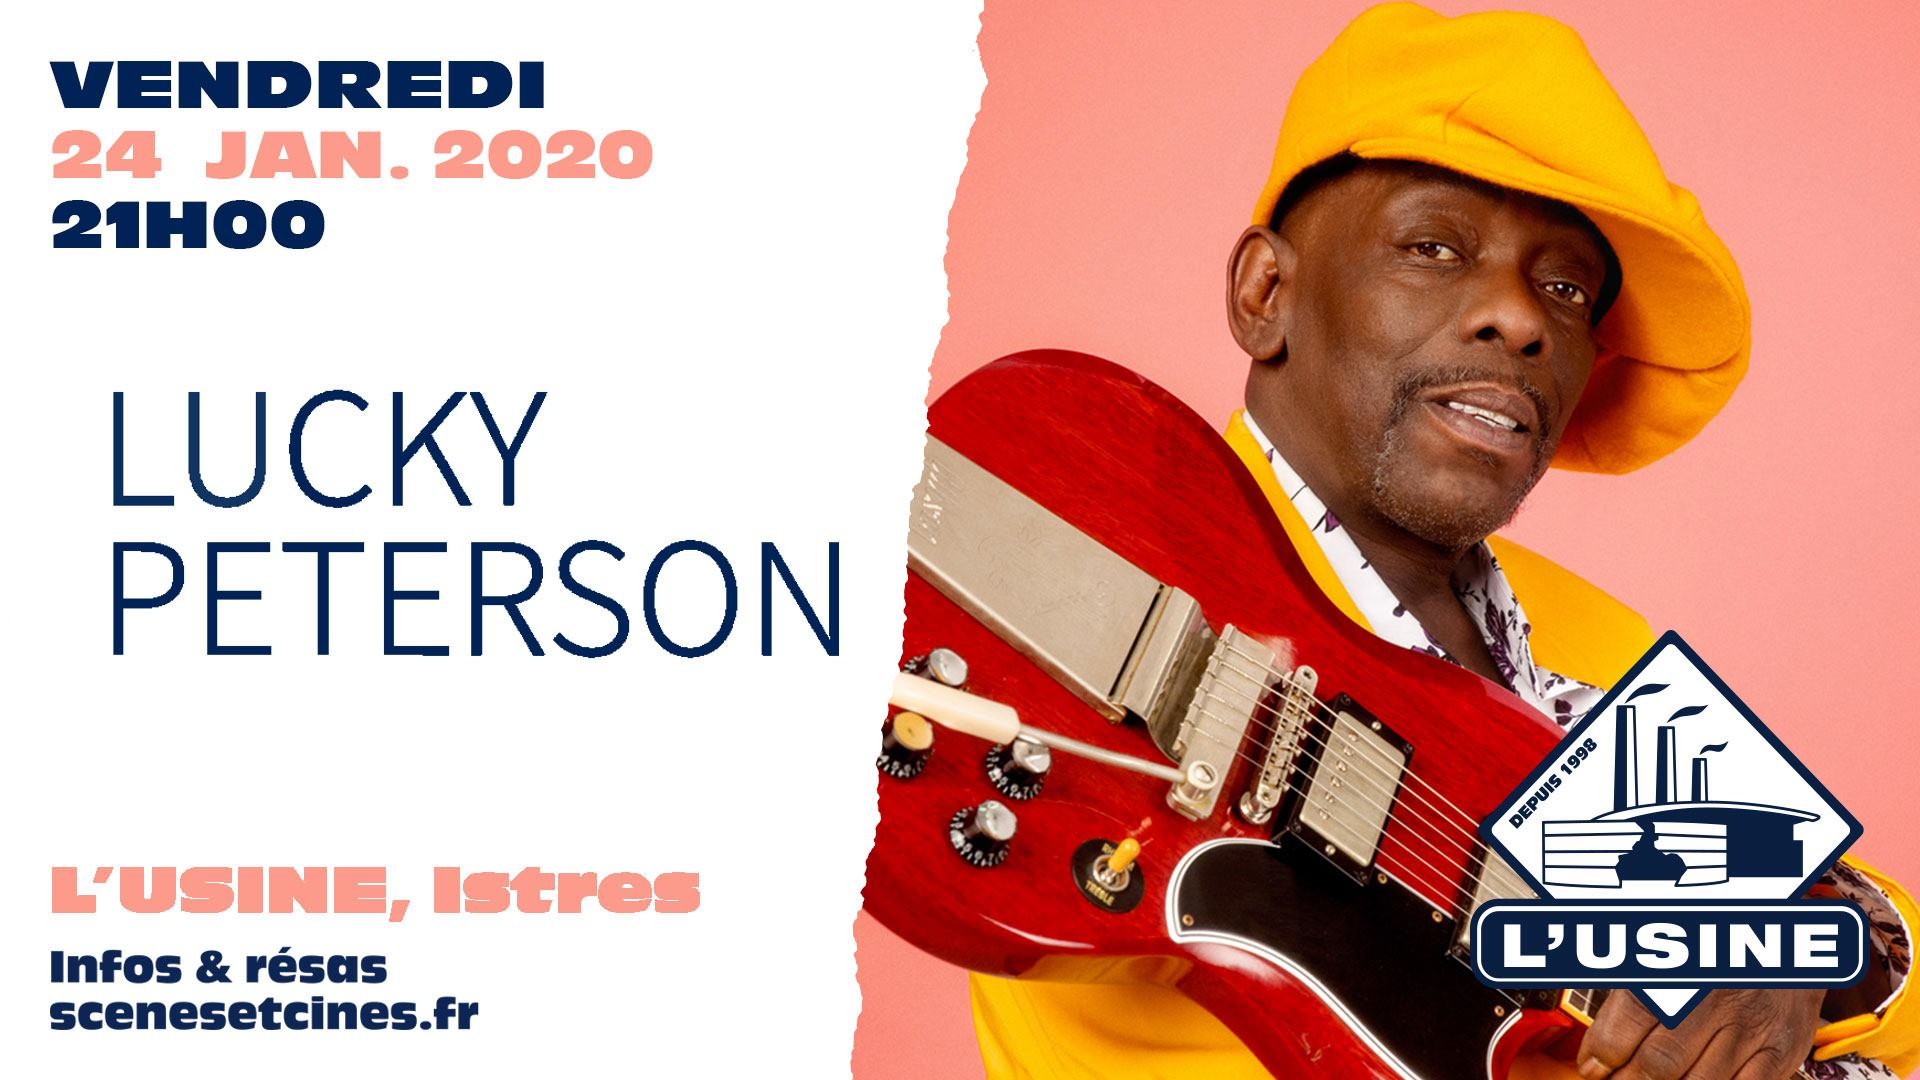 https://the-place-to-be.fr/wp-content/uploads/2019/11/concert-lucky-paterson-usine-istres.jpg